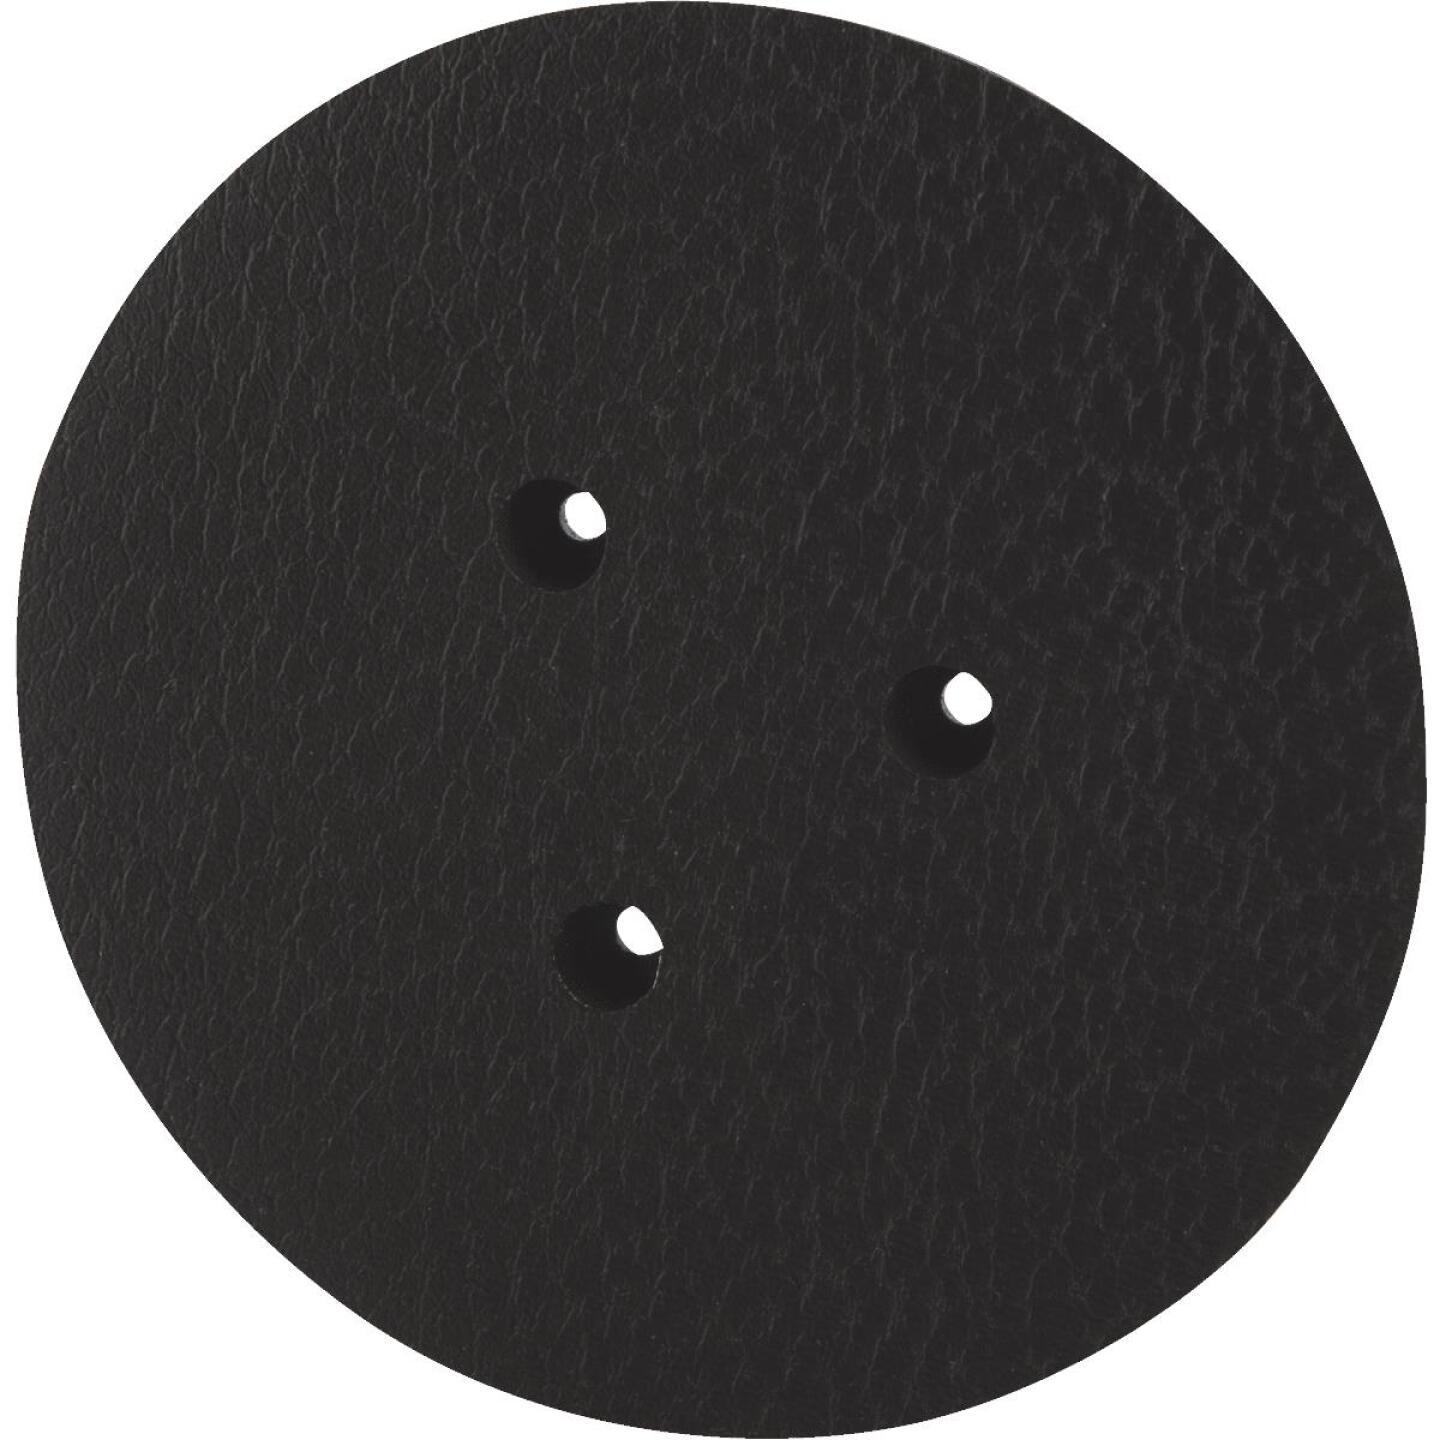 DeWalt PSA 5 In. Sanding Disc Backing Pad Image 1